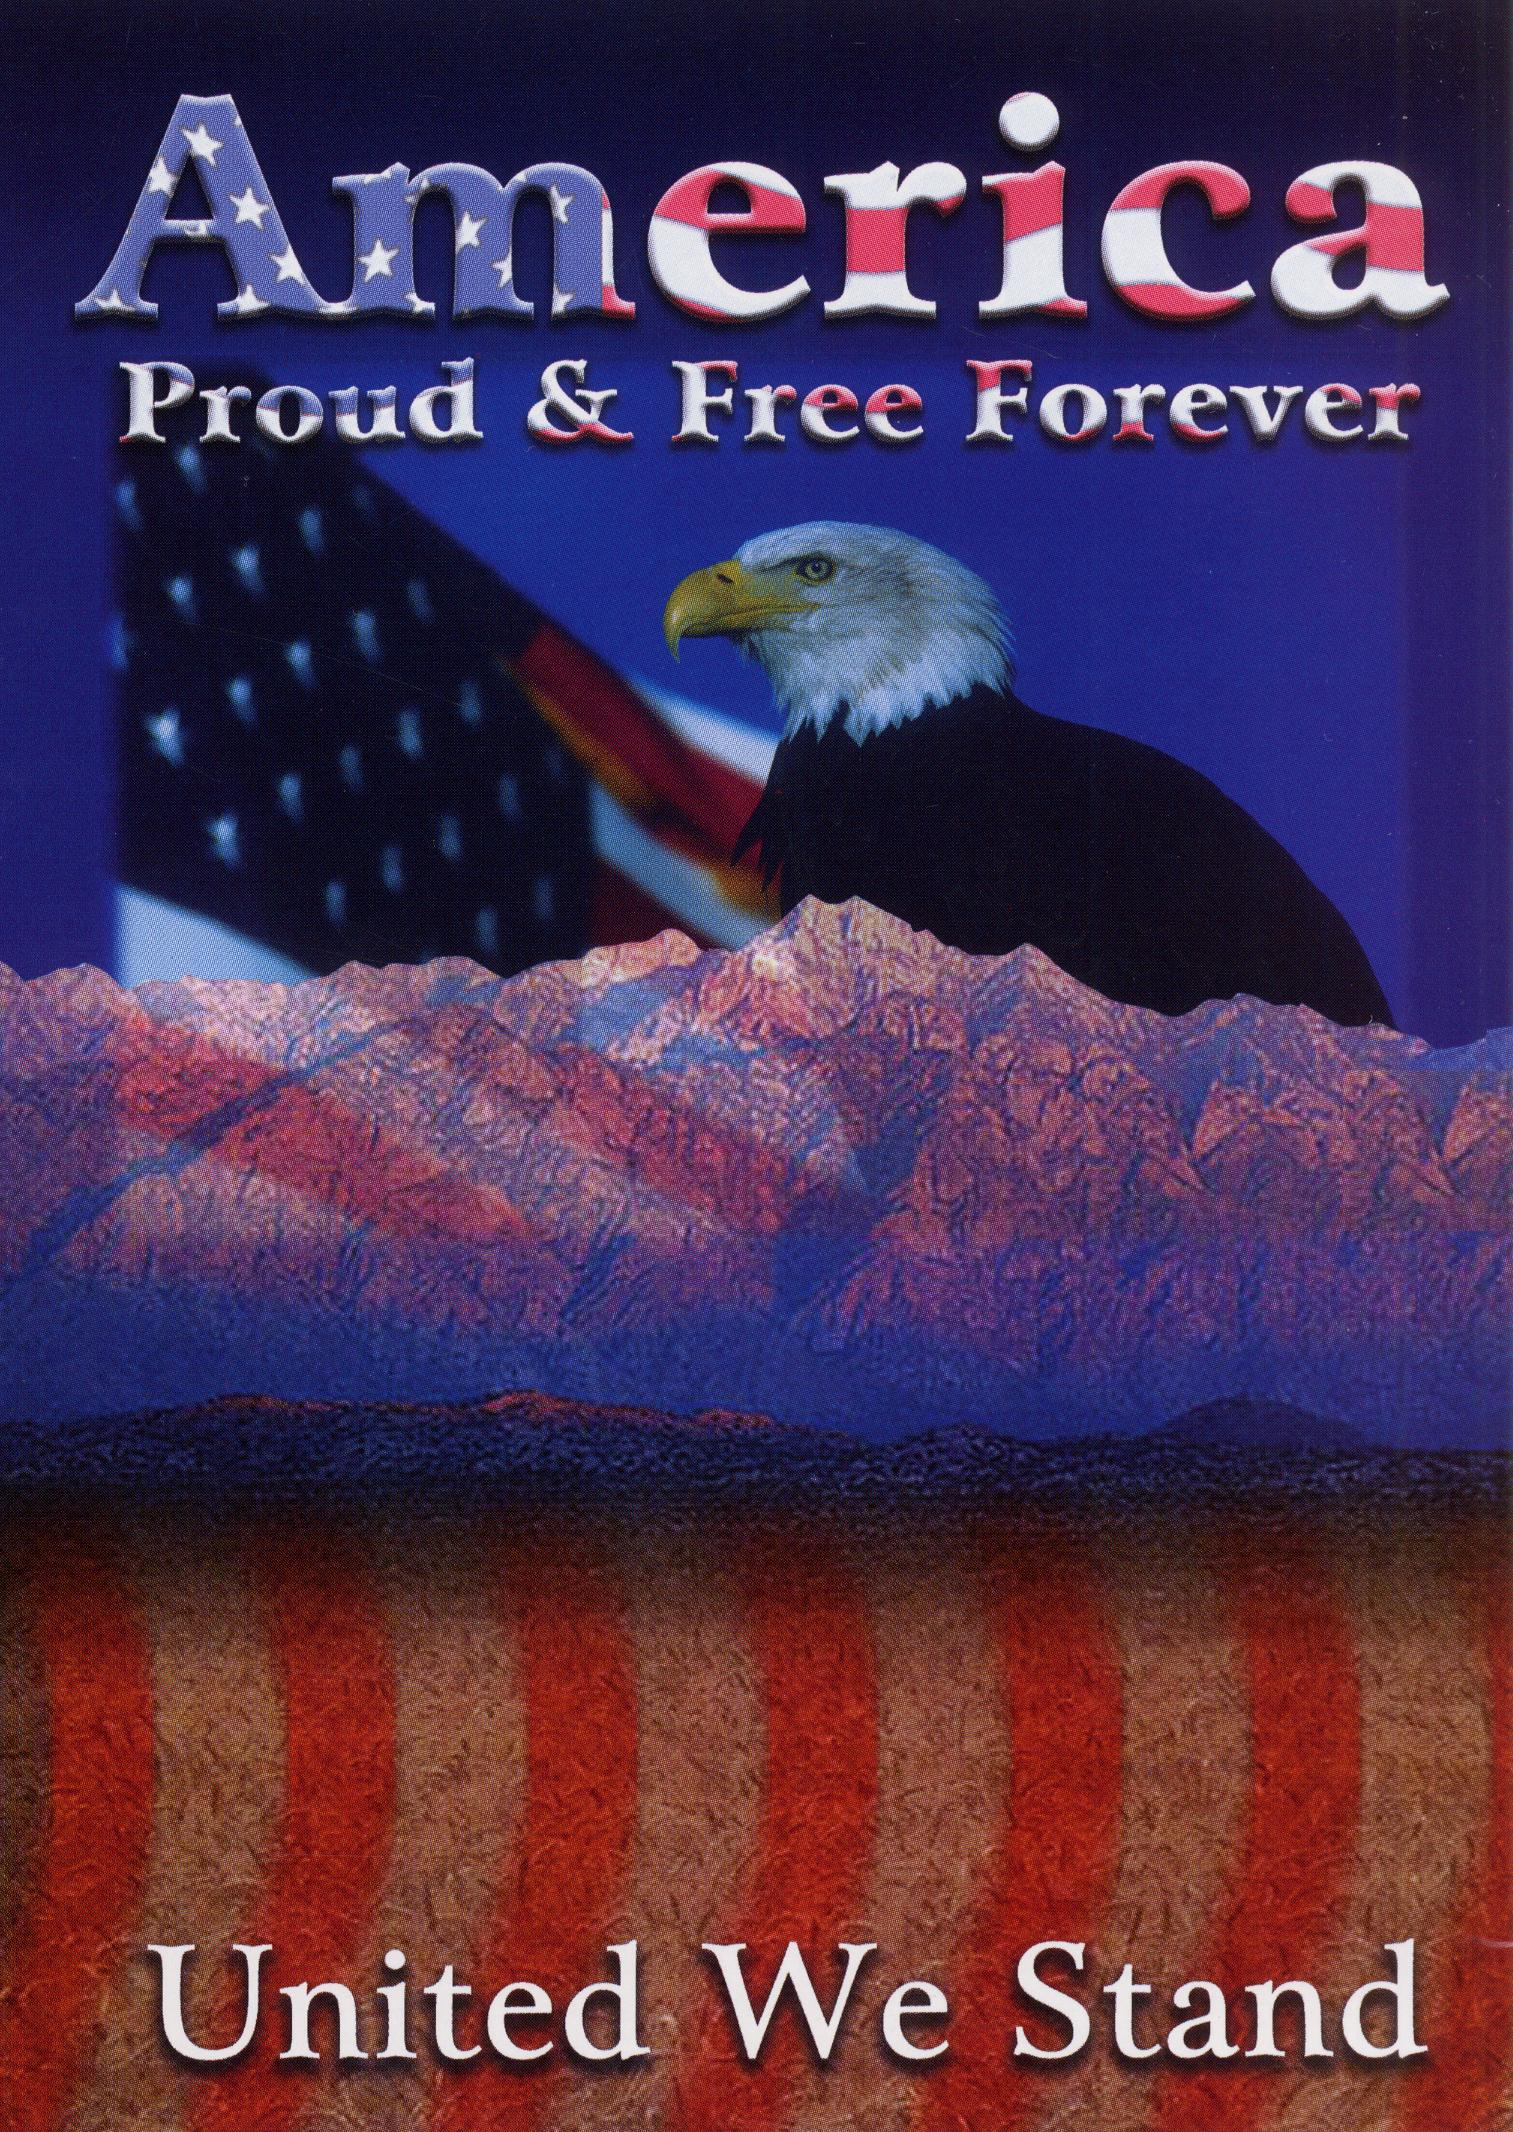 America: Proud & Free Forever